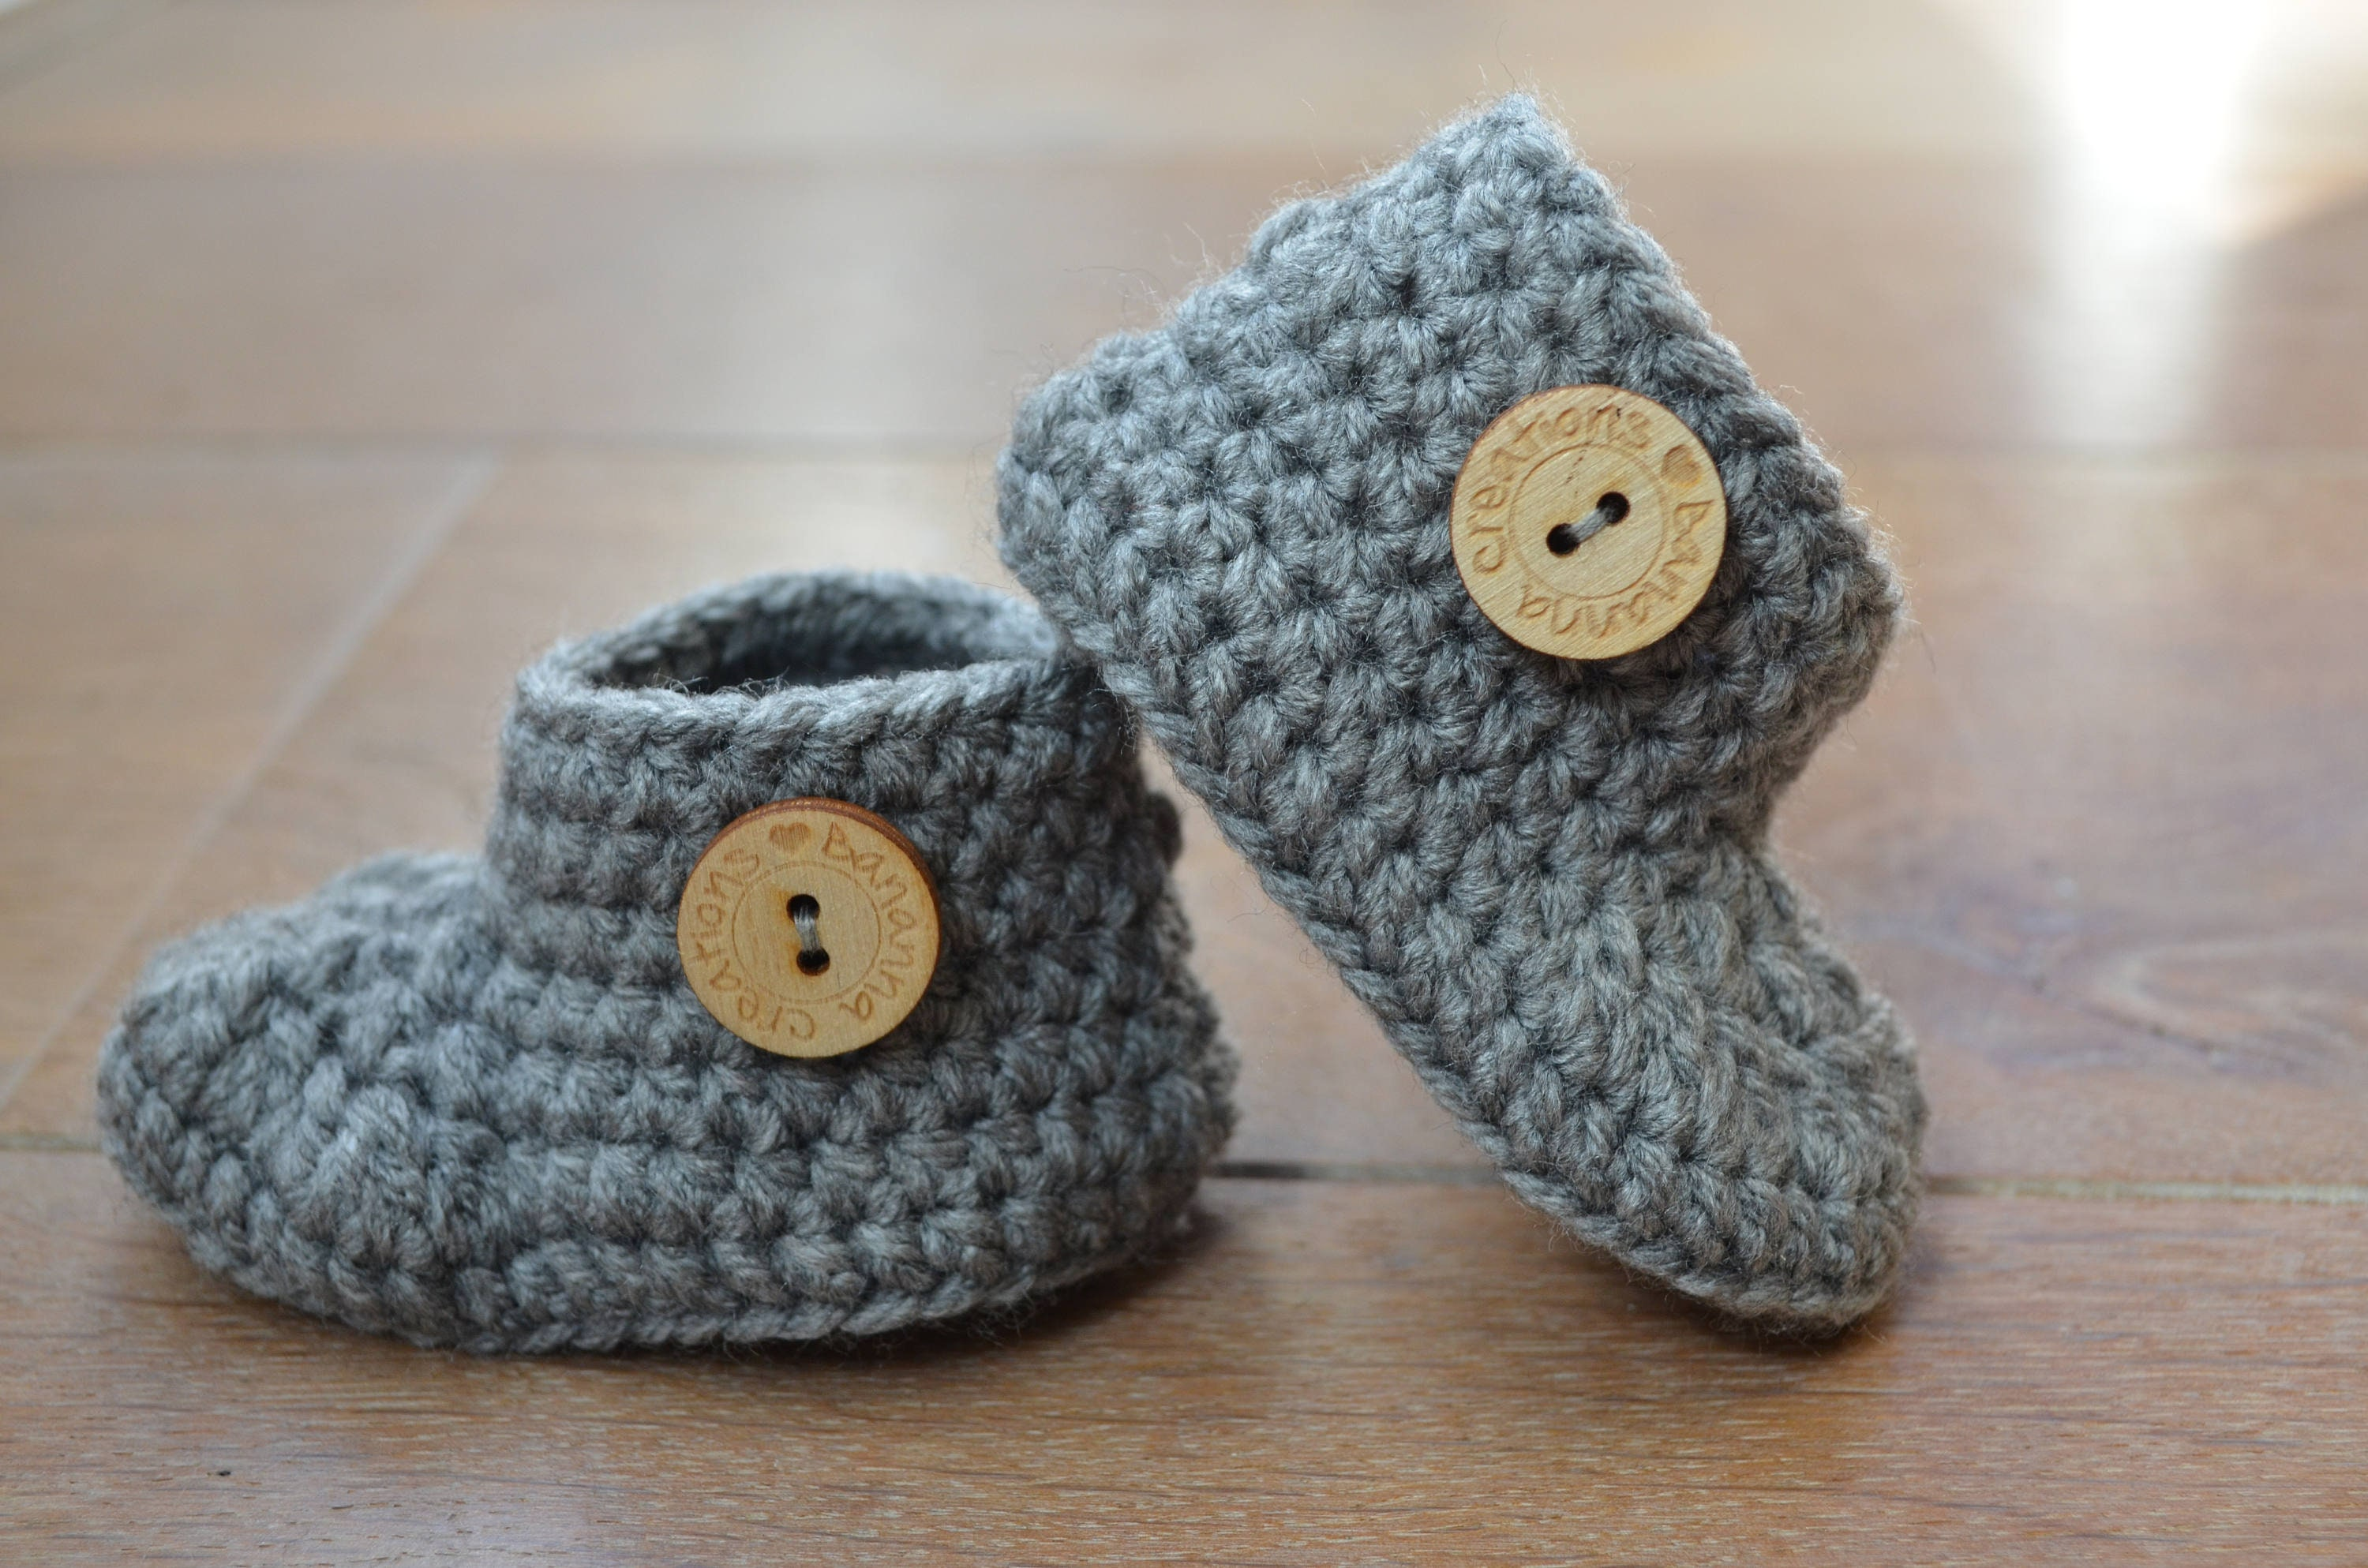 d62468f02cd Crochet baby shoes Pregnancy announcement Crochet baby